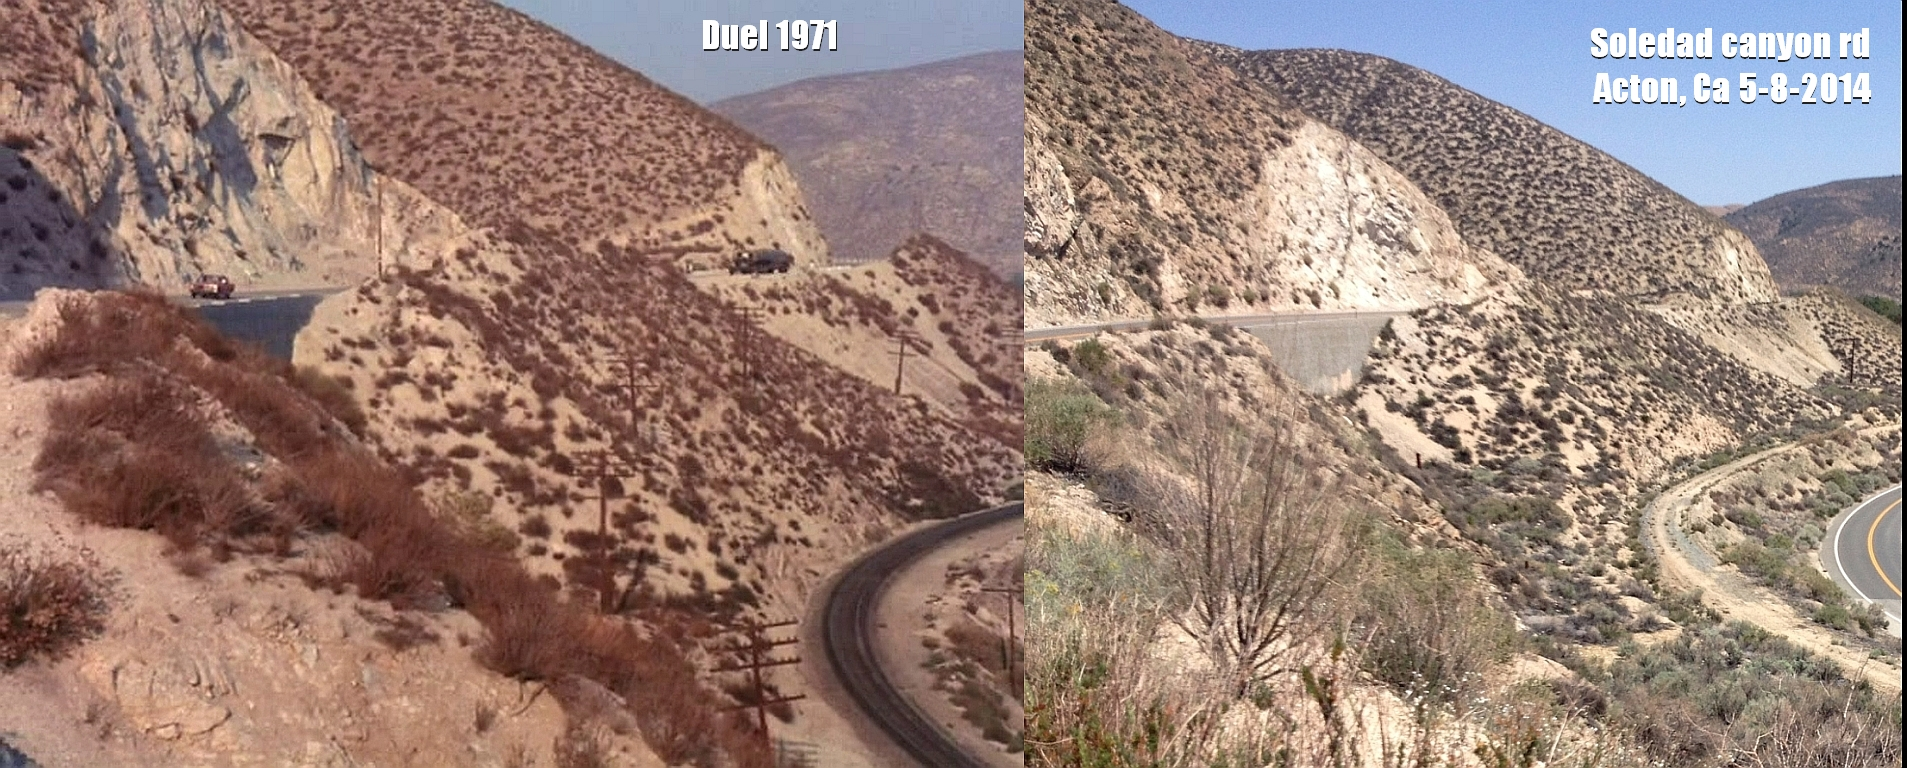 Duel Soledad cyn rd then and now